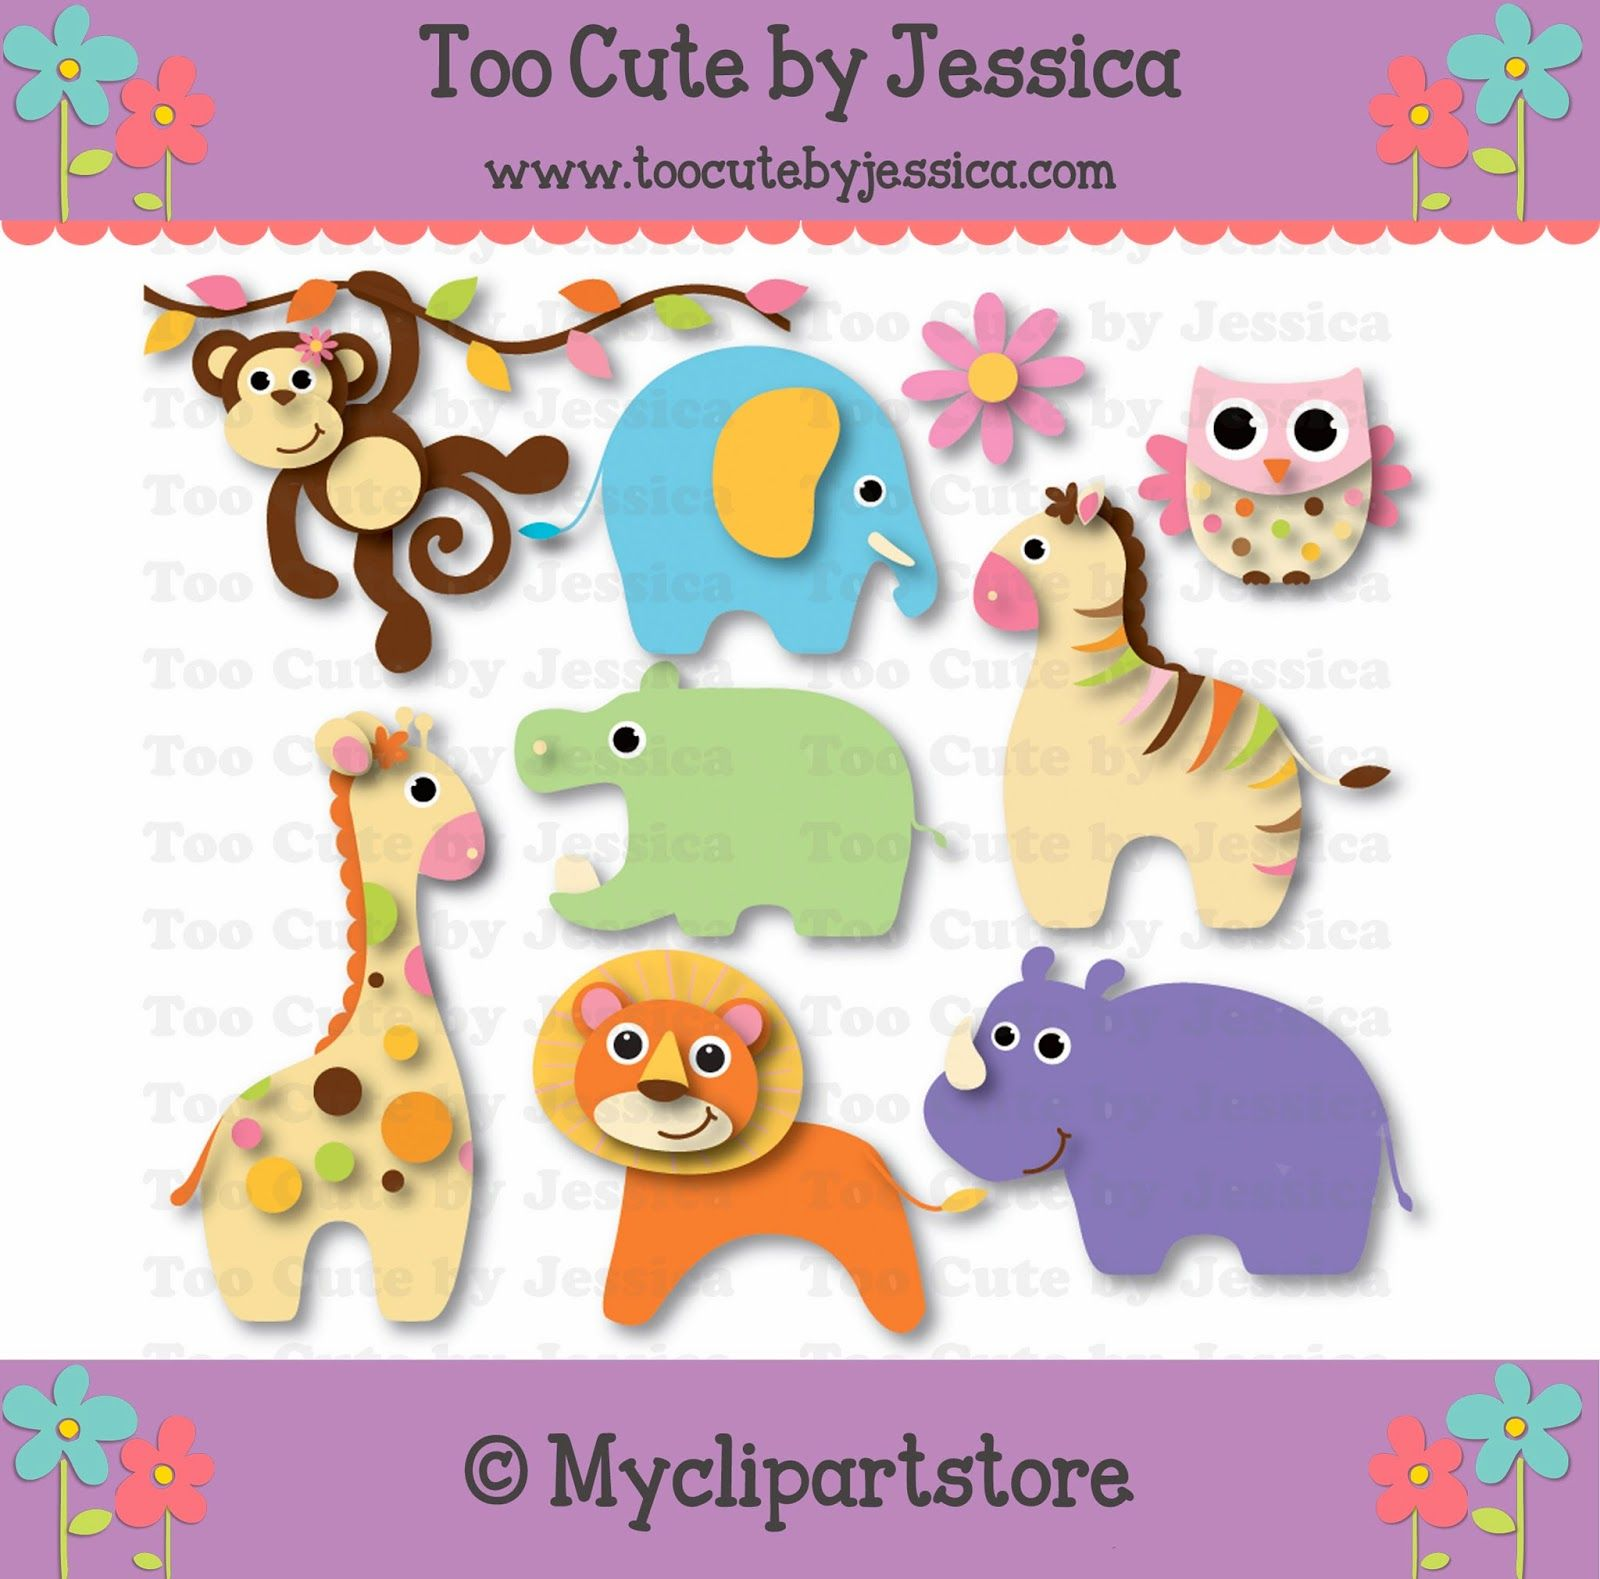 Baby Jungle Animals cutting files, cutting pattern, WPC, SVG, GSD, MTC, SCAL, SILHOUETTE, PDF, JPEG, DXF, Too Cute by Jessica, paper piecing, pazzles